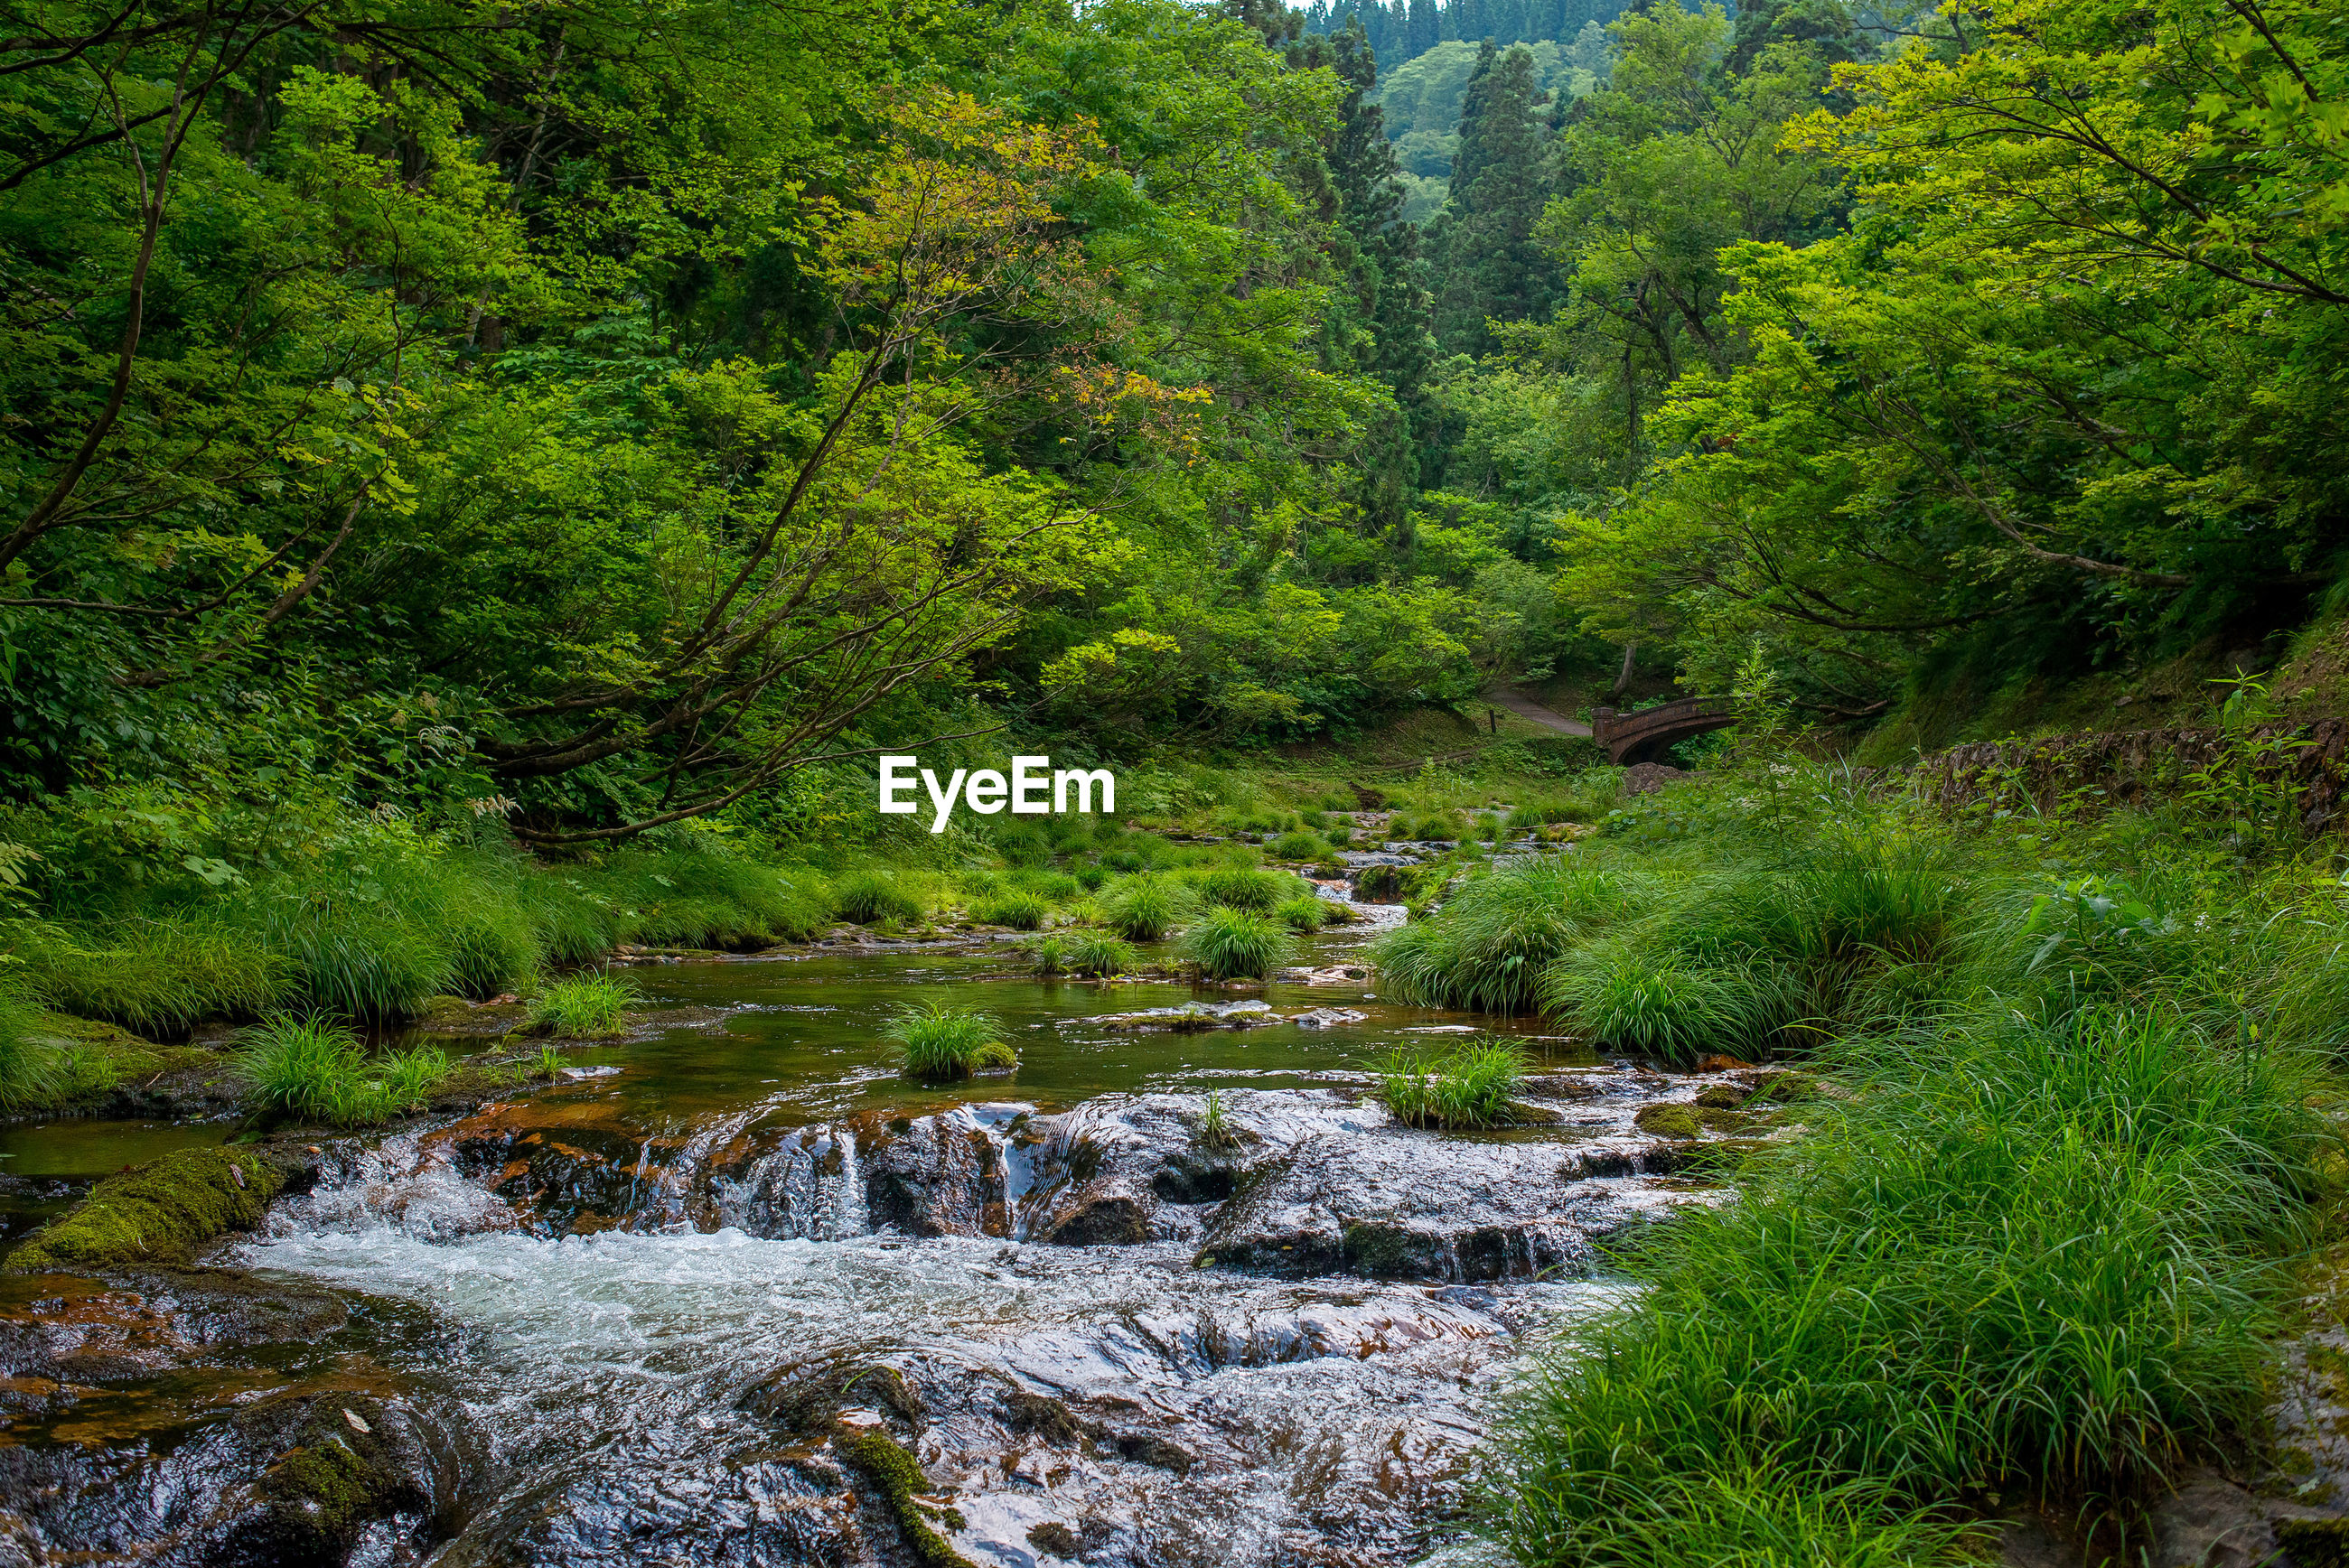 RIVER AMIDST TREES IN FOREST